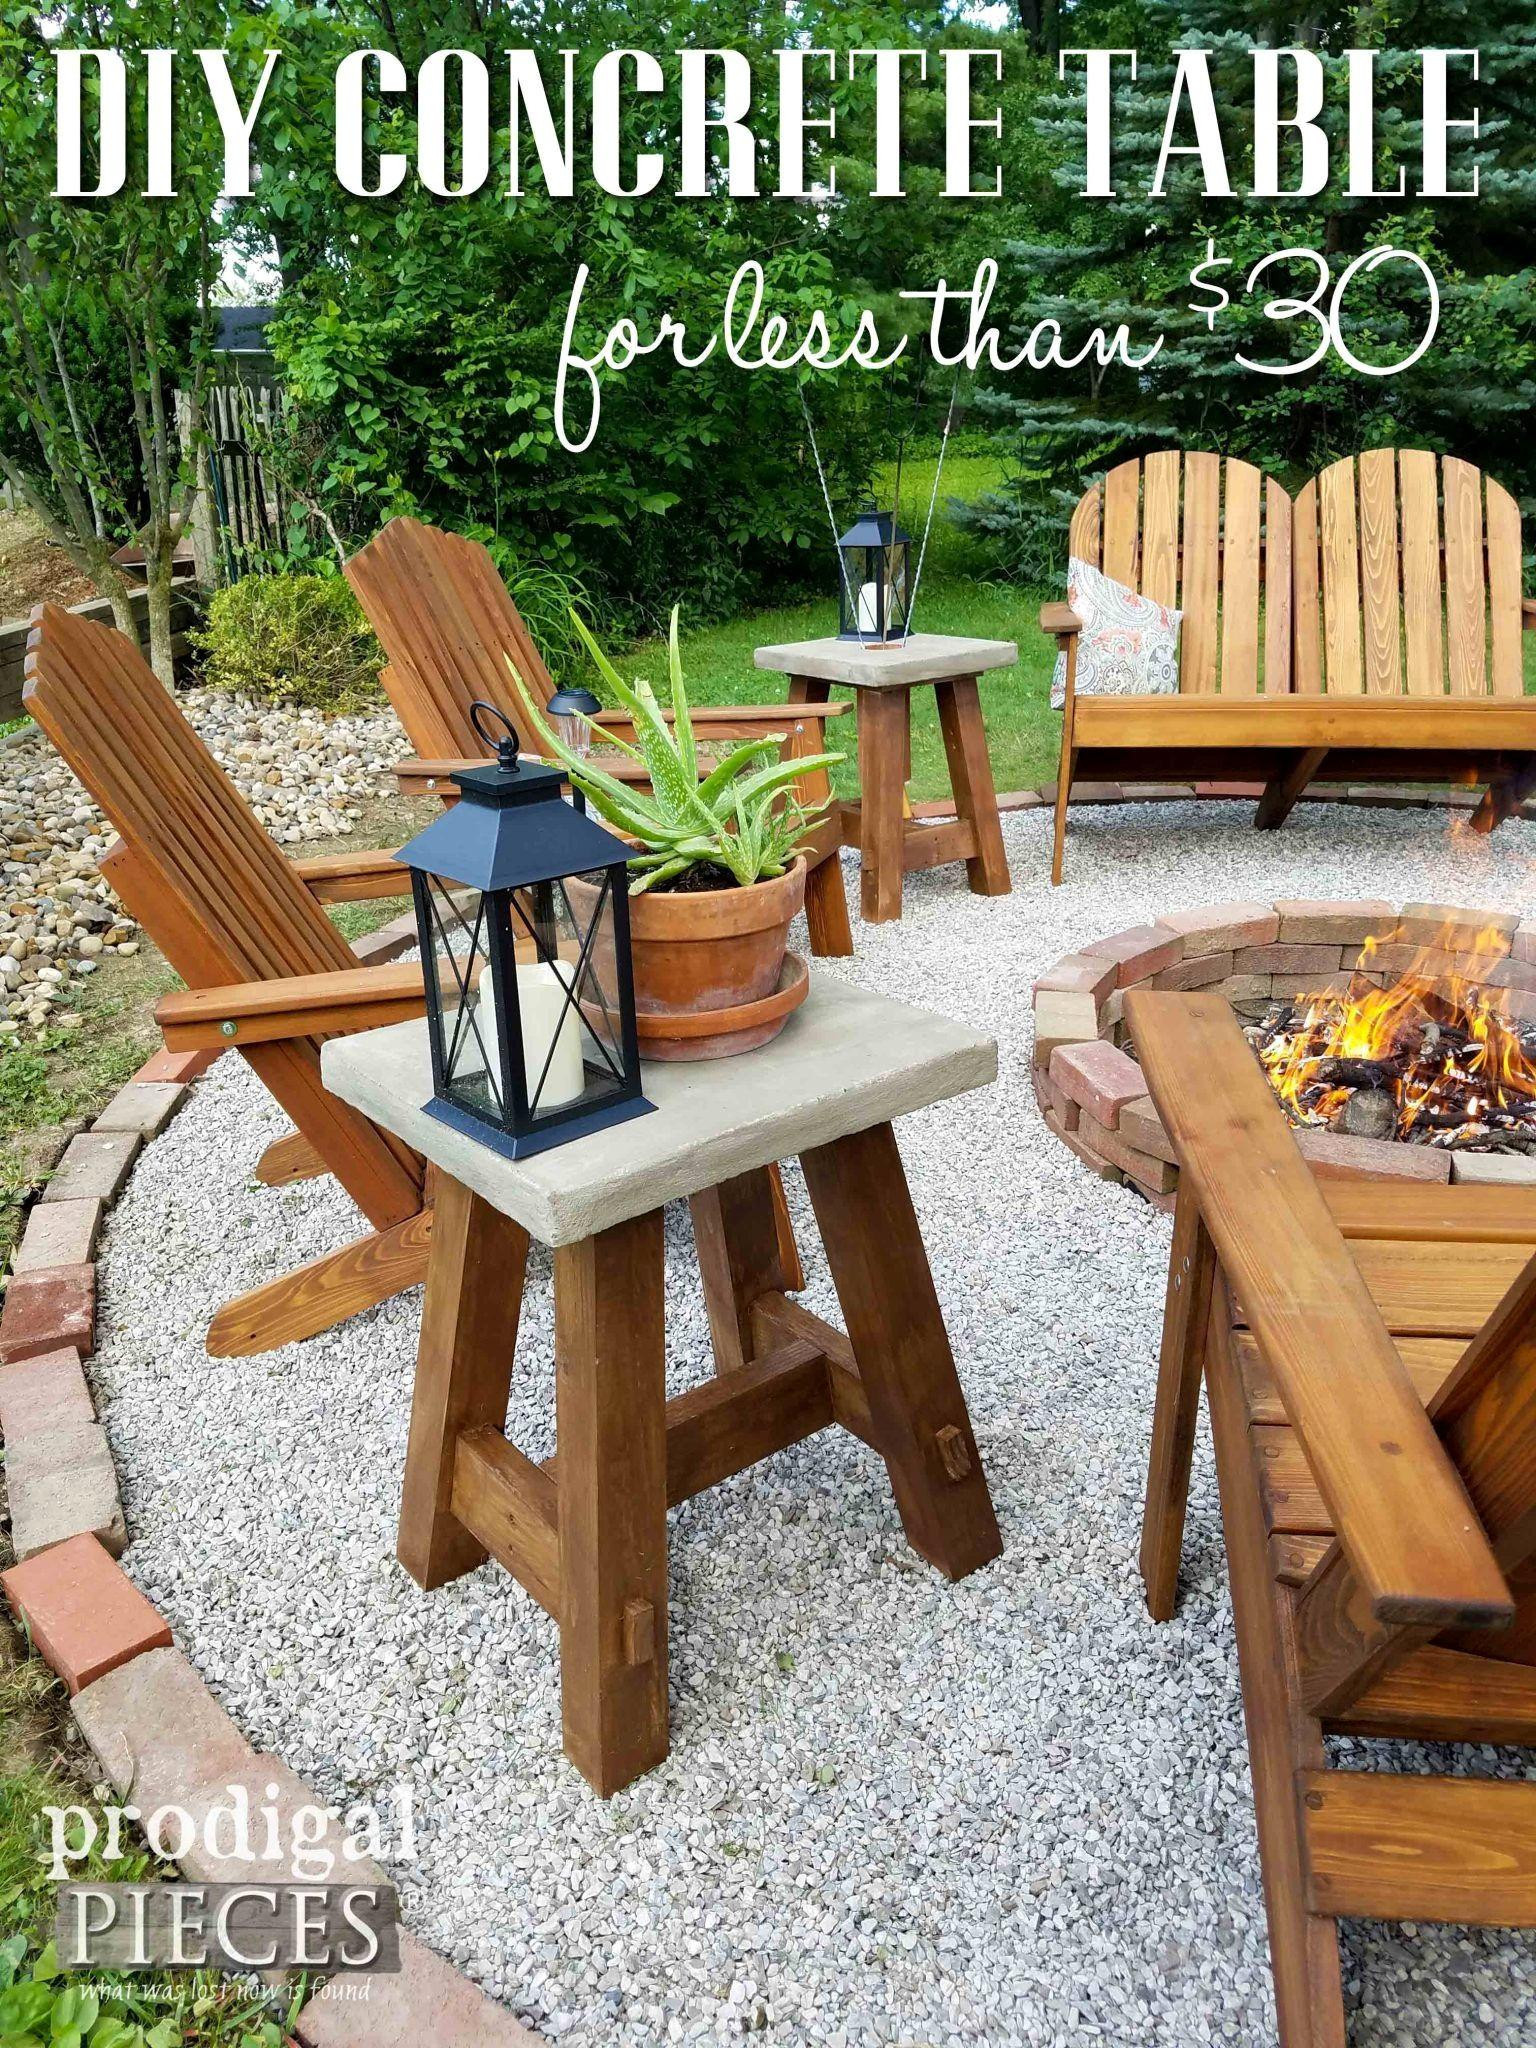 diy hardwood floor on concrete of diy concrete patio ideas luxury outdoor floor lamps for patio pertaining to diy concrete patio ideas luxury outdoor floor lamps for patio beautiful coffee tables rowan od small